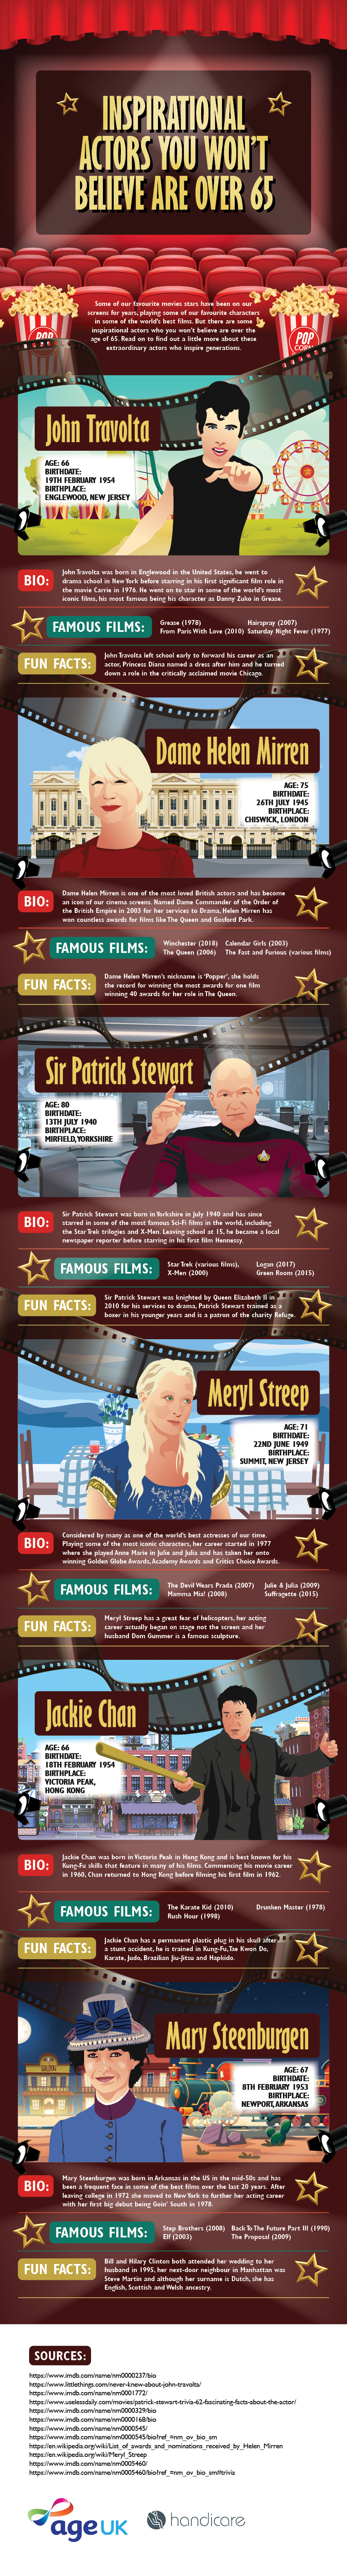 Inspirational actors over 65 infographic